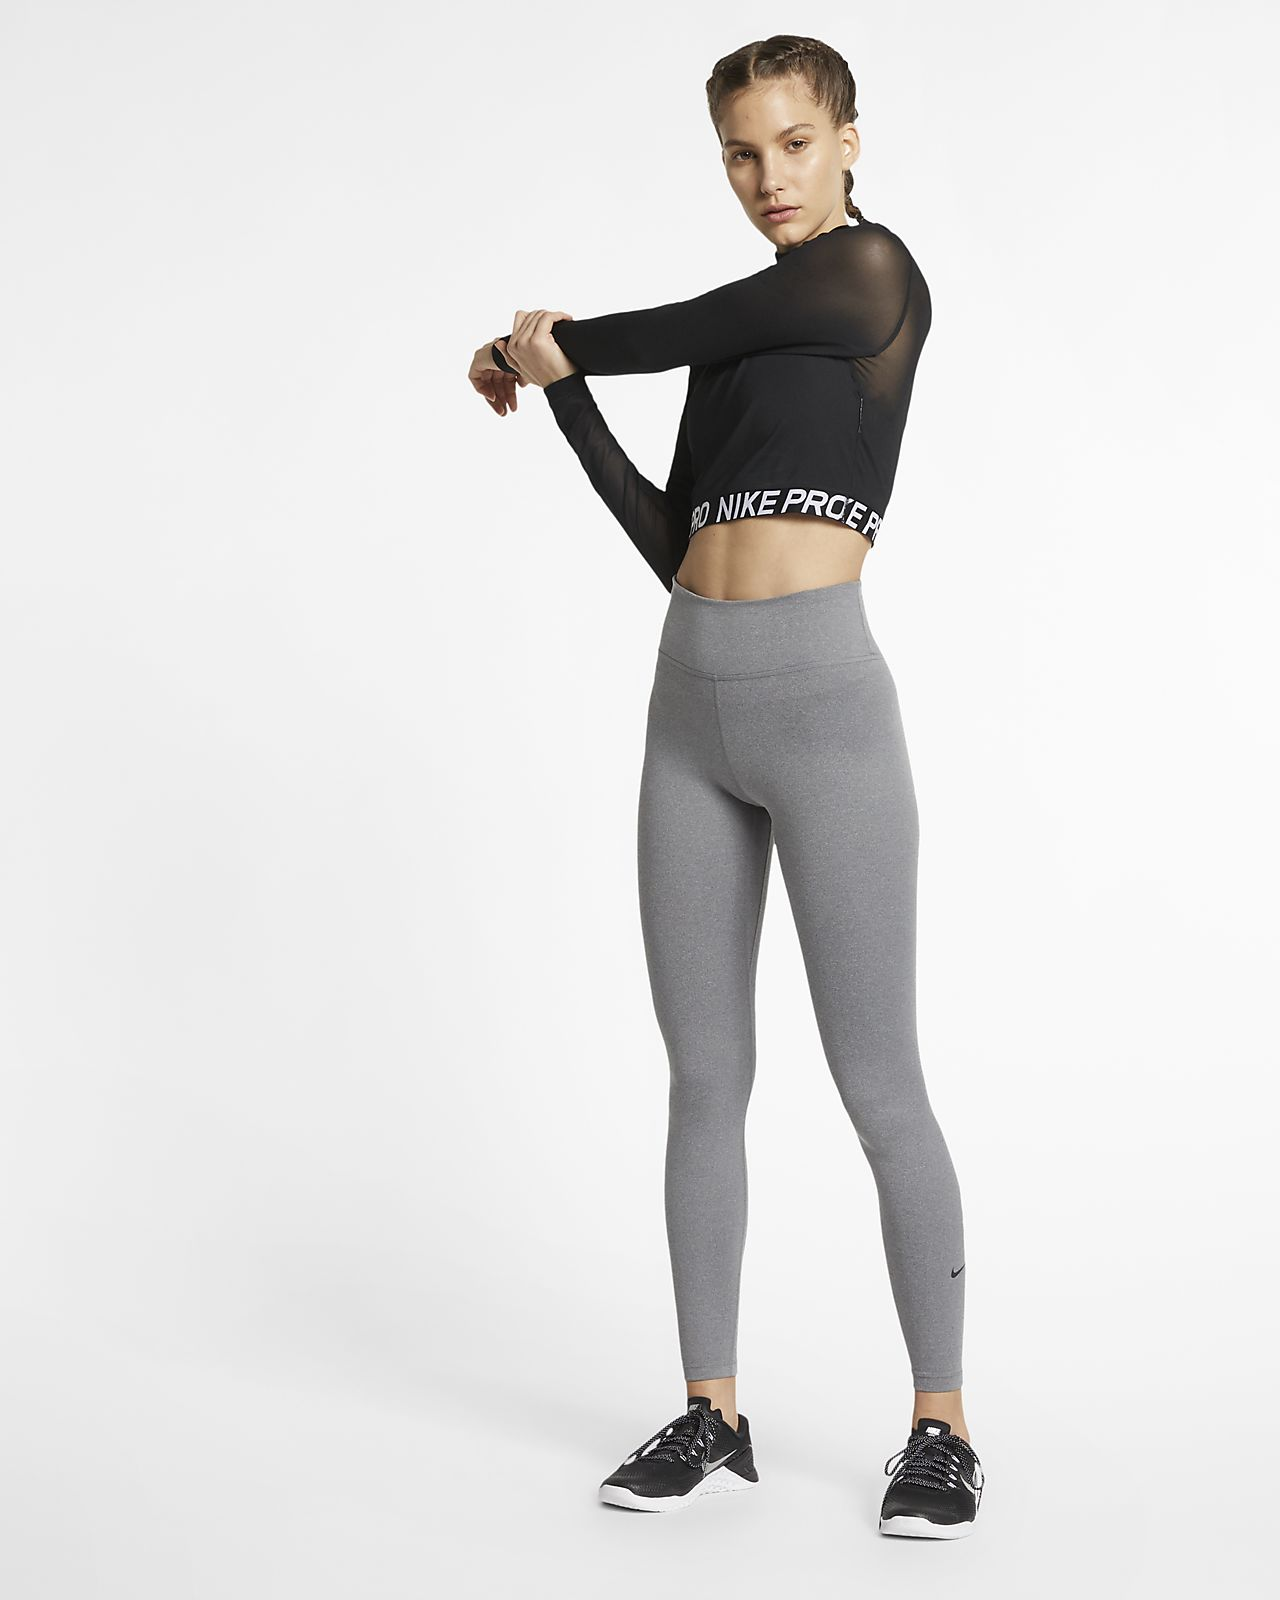 35359da6 Nike Pro Women's Long-Sleeve Top. Nike.com